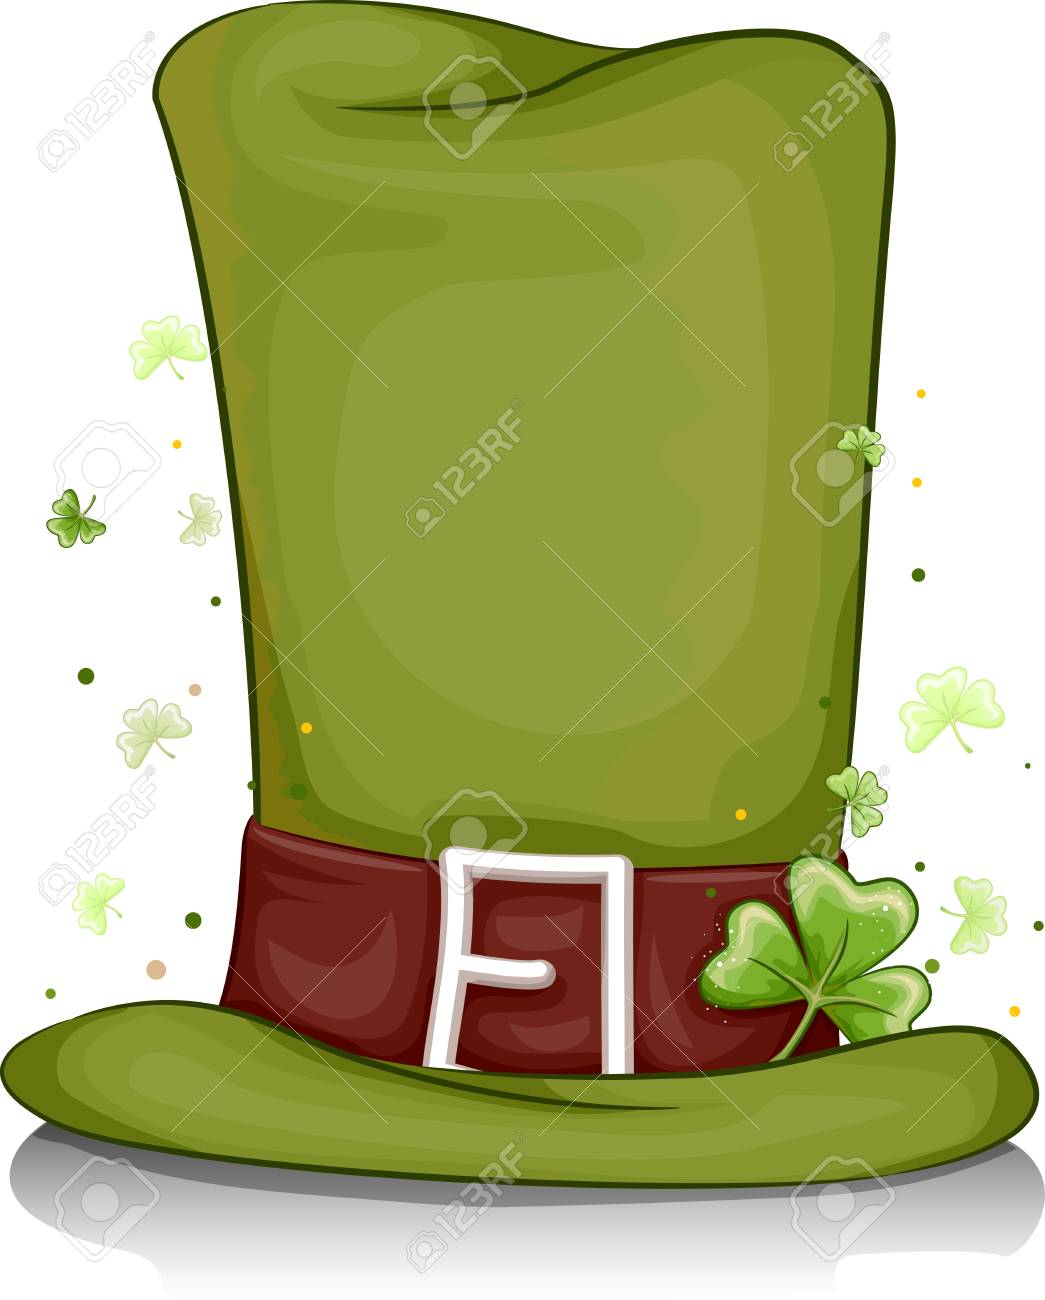 Illustration of a Leprechaun's Hat for Background Stock Photo - 8993595